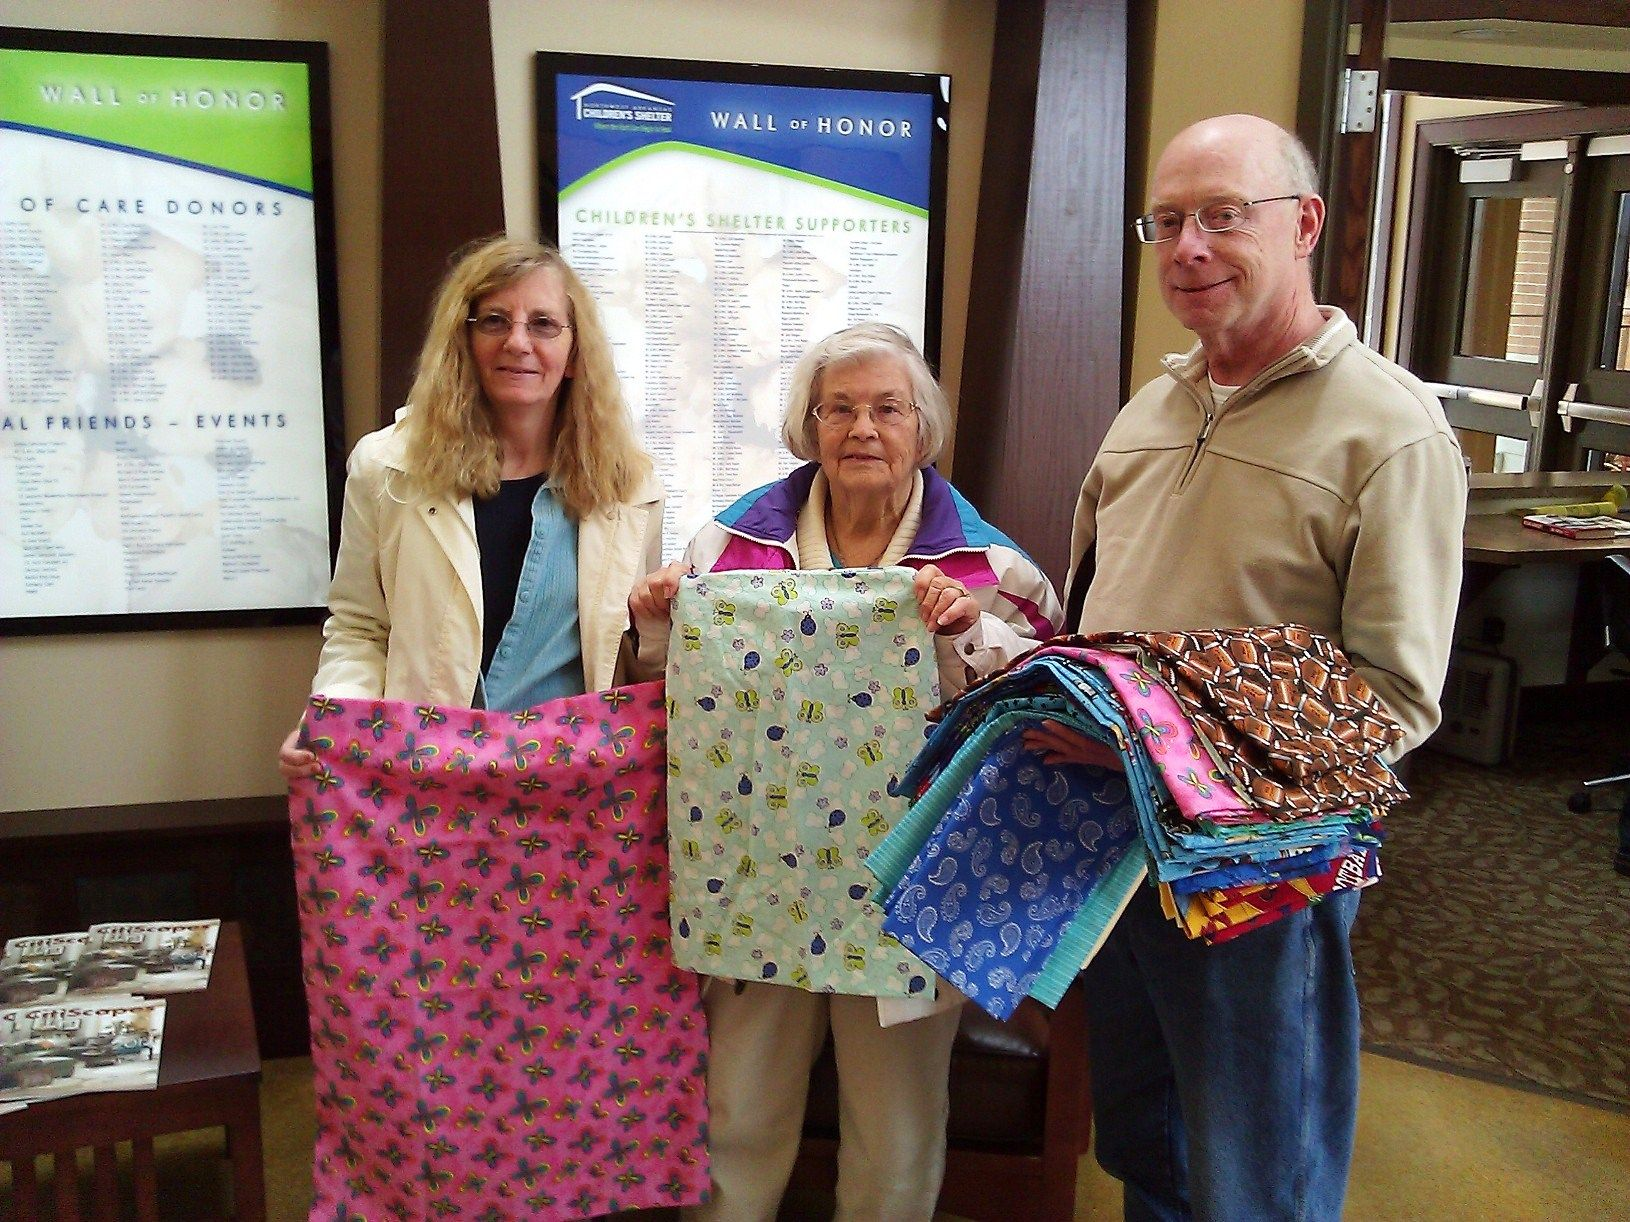 PRETTY PILLOWCASES -- Bernice Hunt (from left) of Bella Vista, Alma Dickson of Lawton, Okla. and Stephen Hunt of Bella Vista show off some of the 32 original pillowcases they made and donated to the kids at Northwest Arkansas Children's Shelter. The Children's Shelter has to provide everything our kids need for up to 45 days, including bedding, so we very much appreciate the creativity, thoughtfulness and tender loving care that went into this heart-felt and very practical donation!